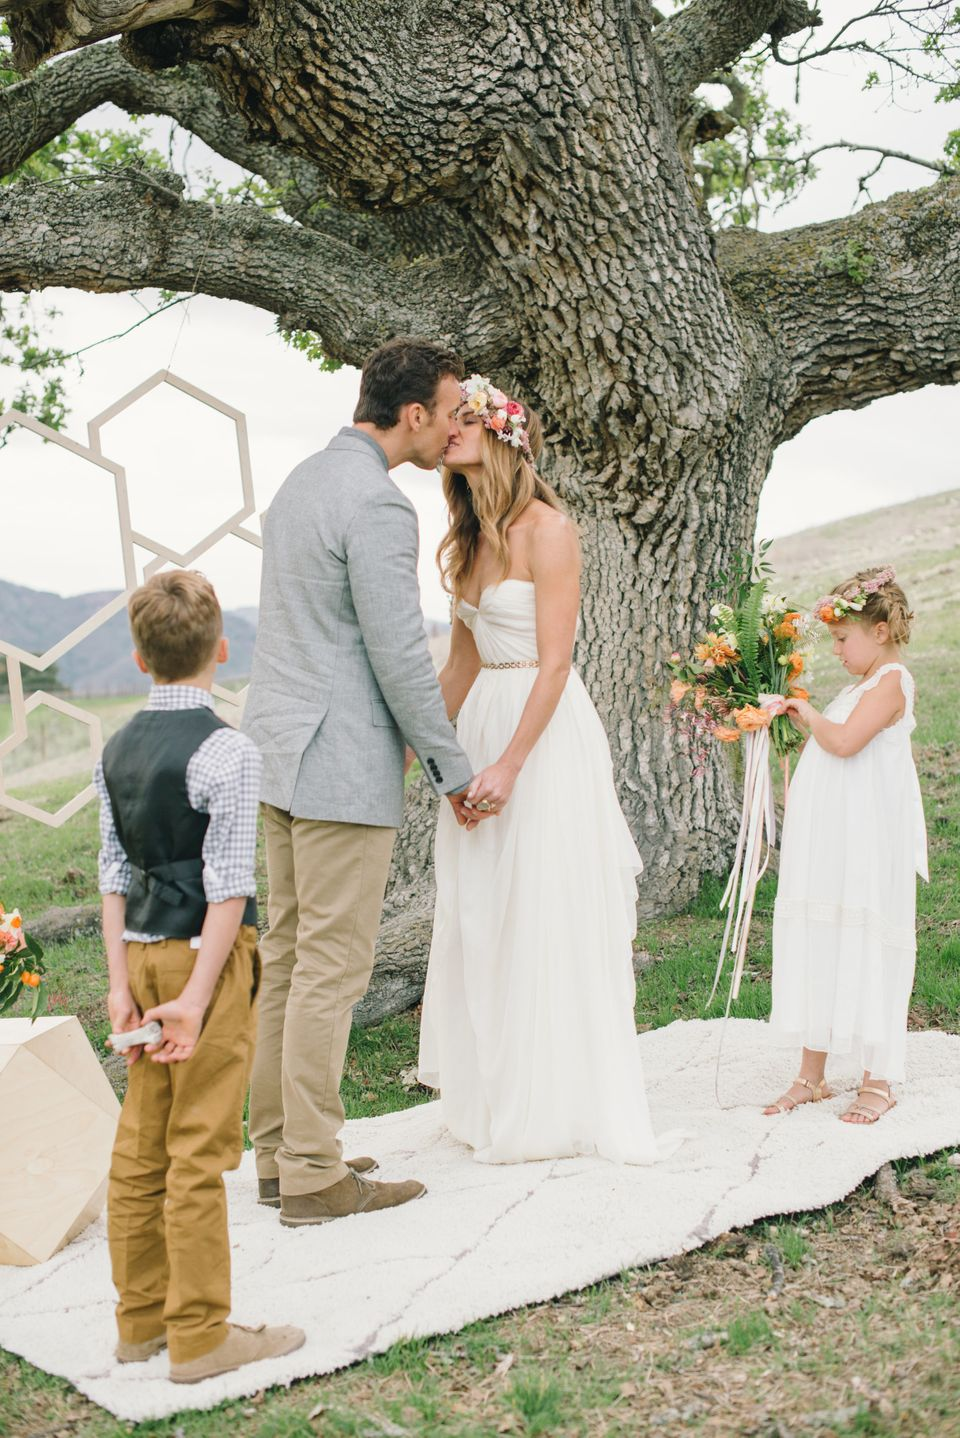 8 beautiful vow renewals that may inspire you to plan your own